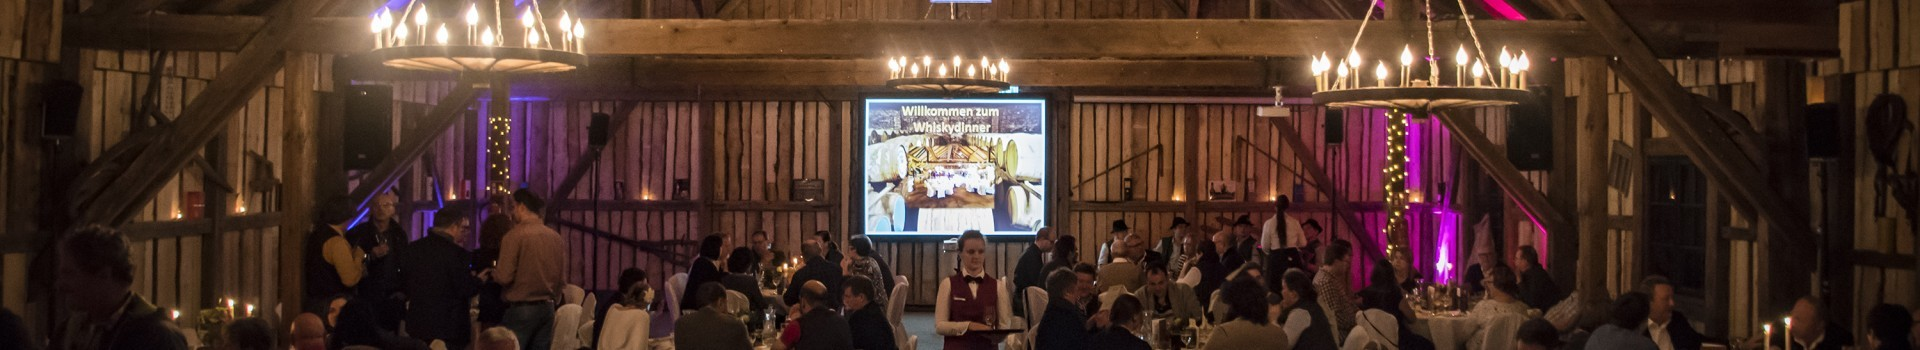 EVENTSCHEUNE Wallenburg Whiskydinner